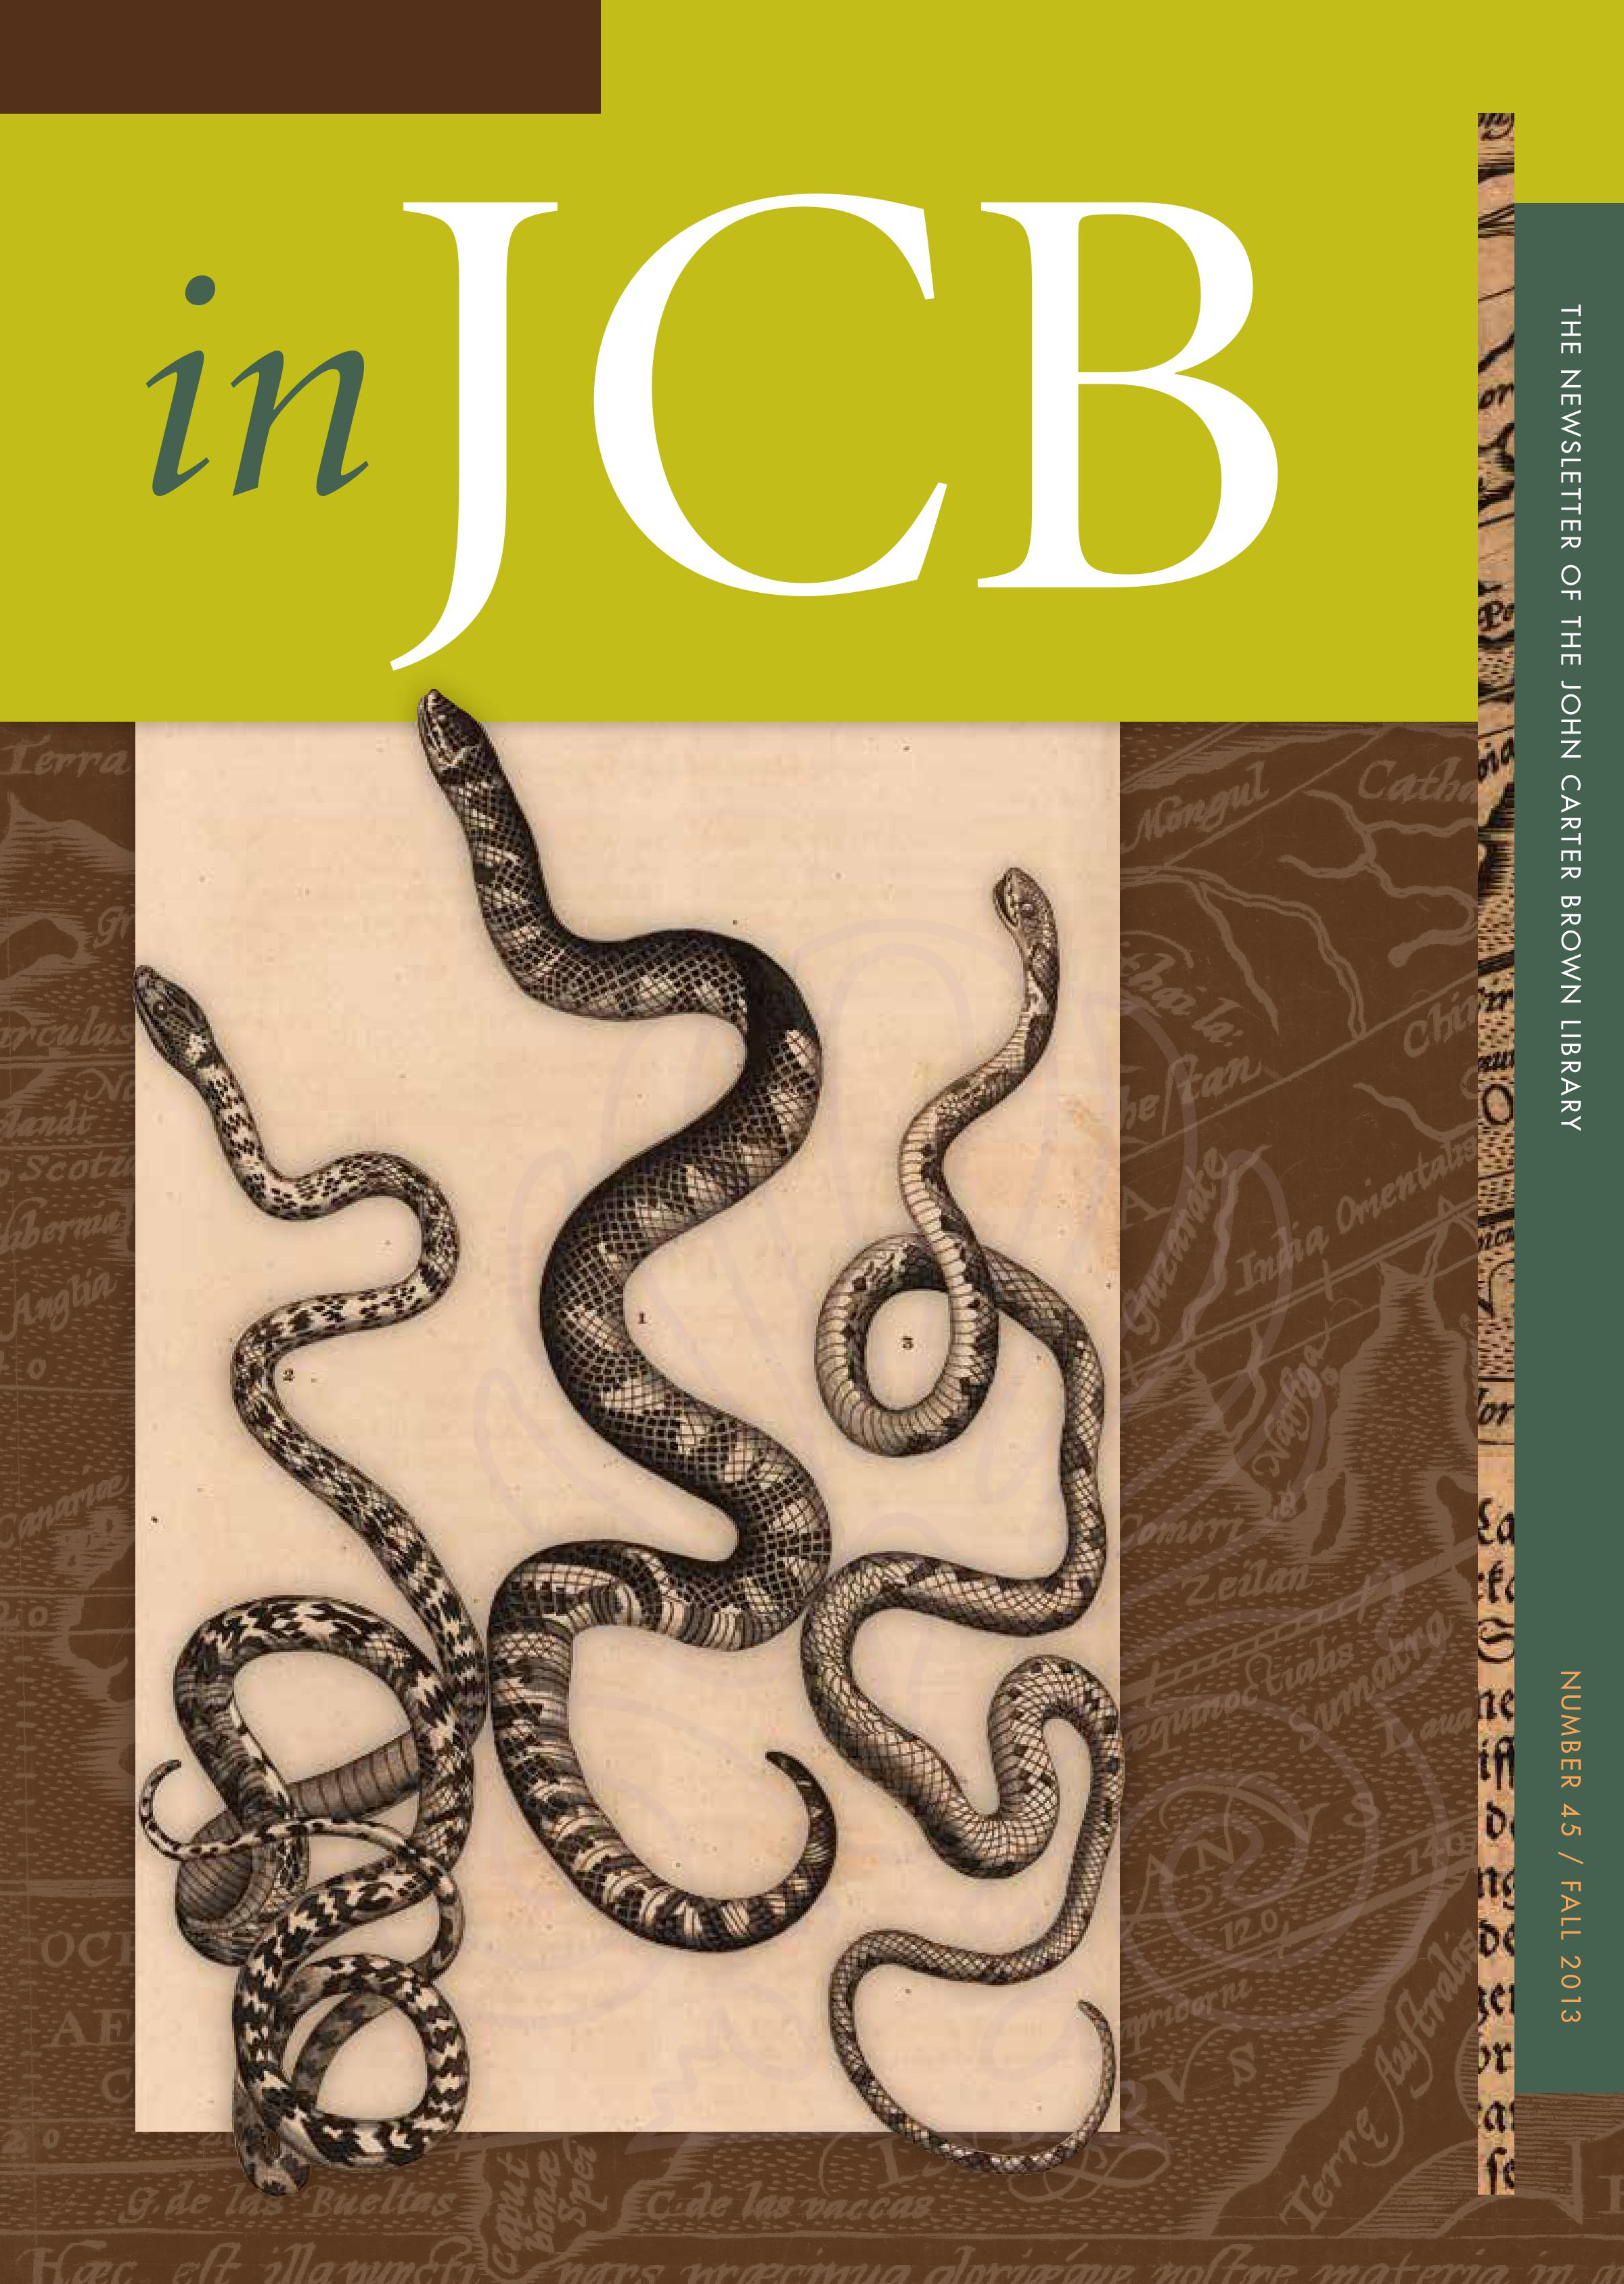 colorful cover of the In JCB newsletter, showing three snakes